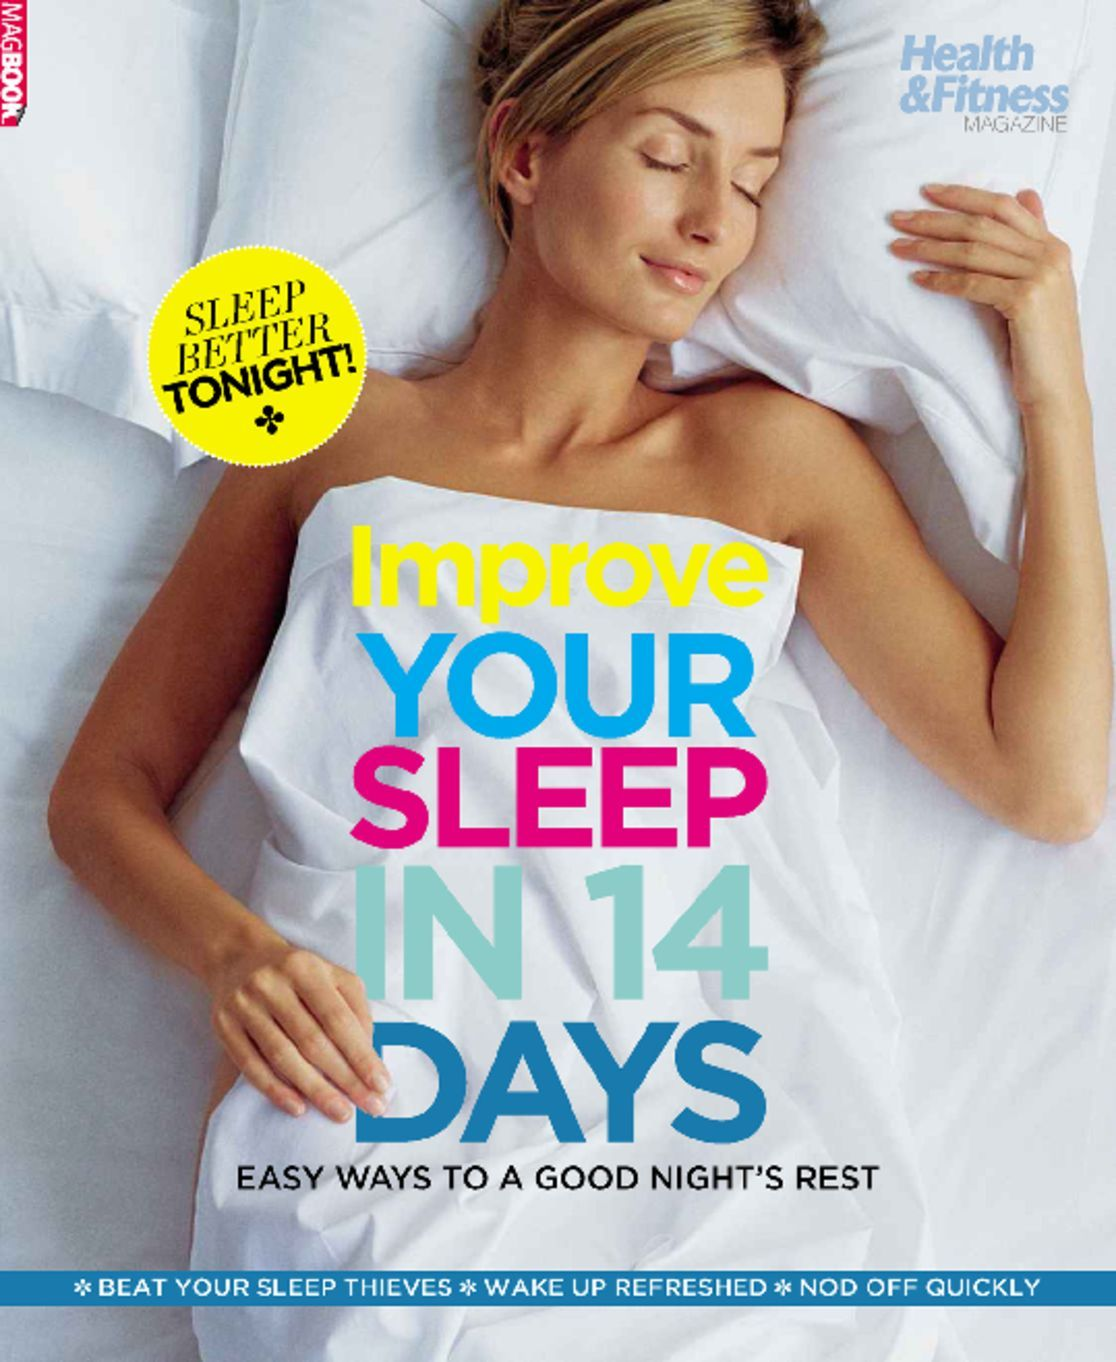 H&F Improve your sleep in 14 days (Digital)